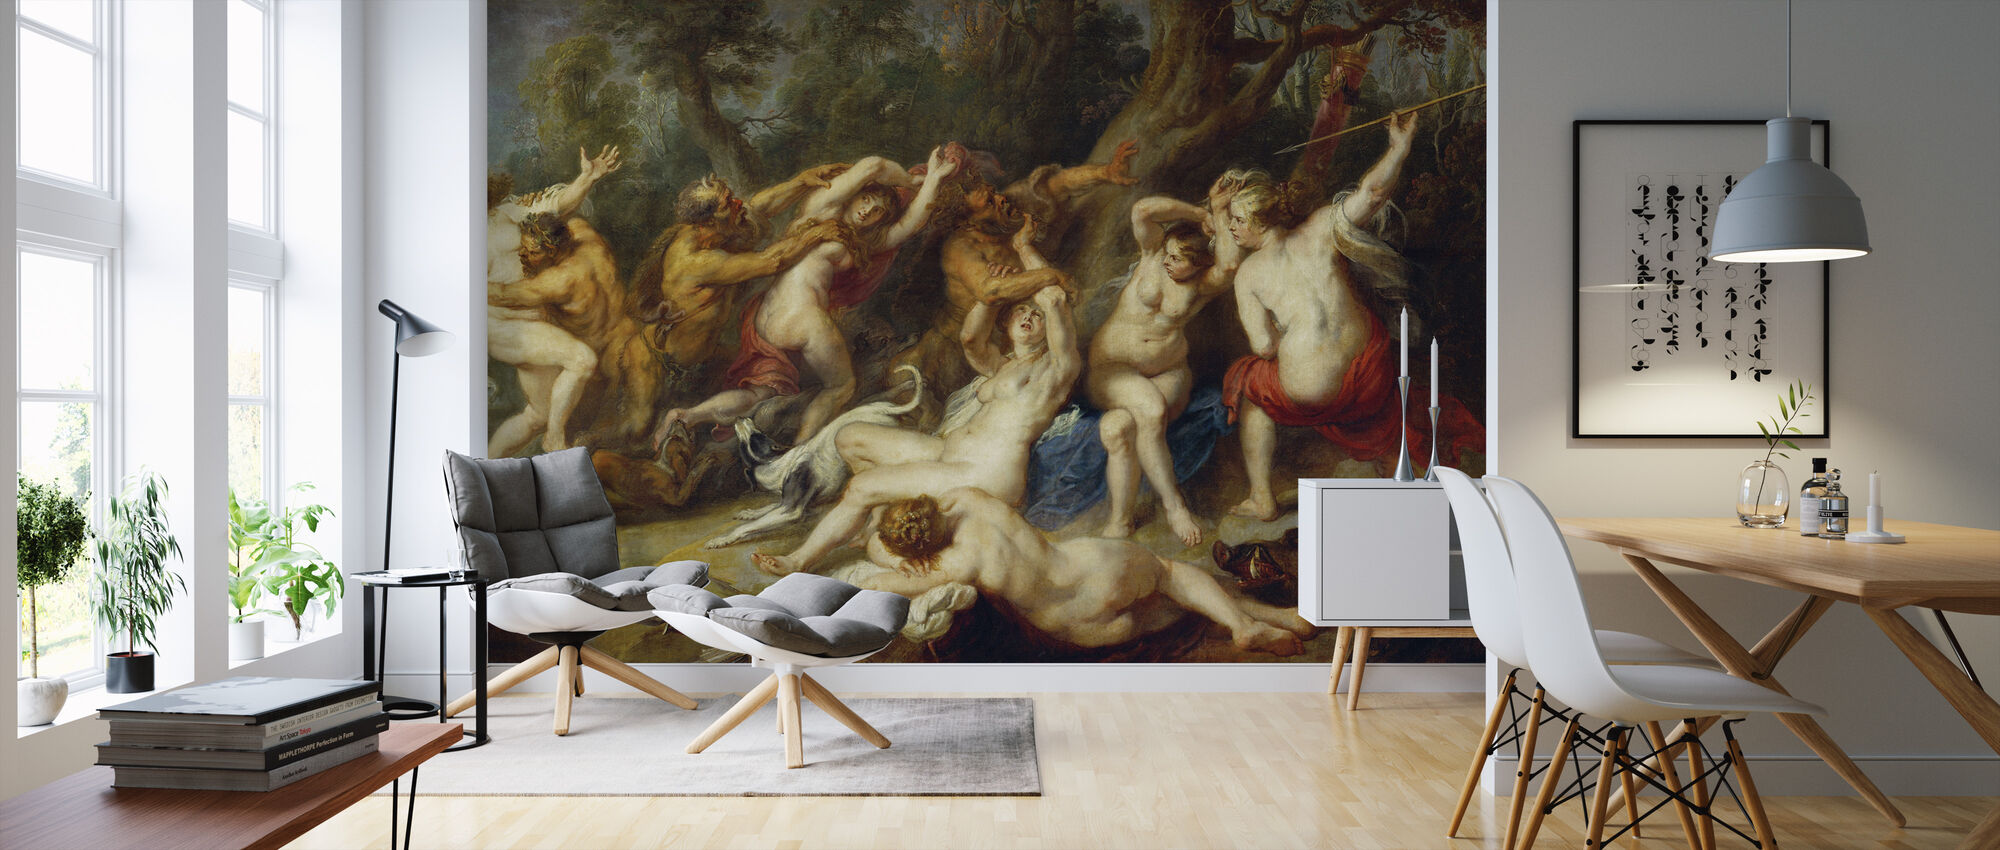 Diana and her Nymphs, Peter Paul Rubens - Wallpaper - Living Room